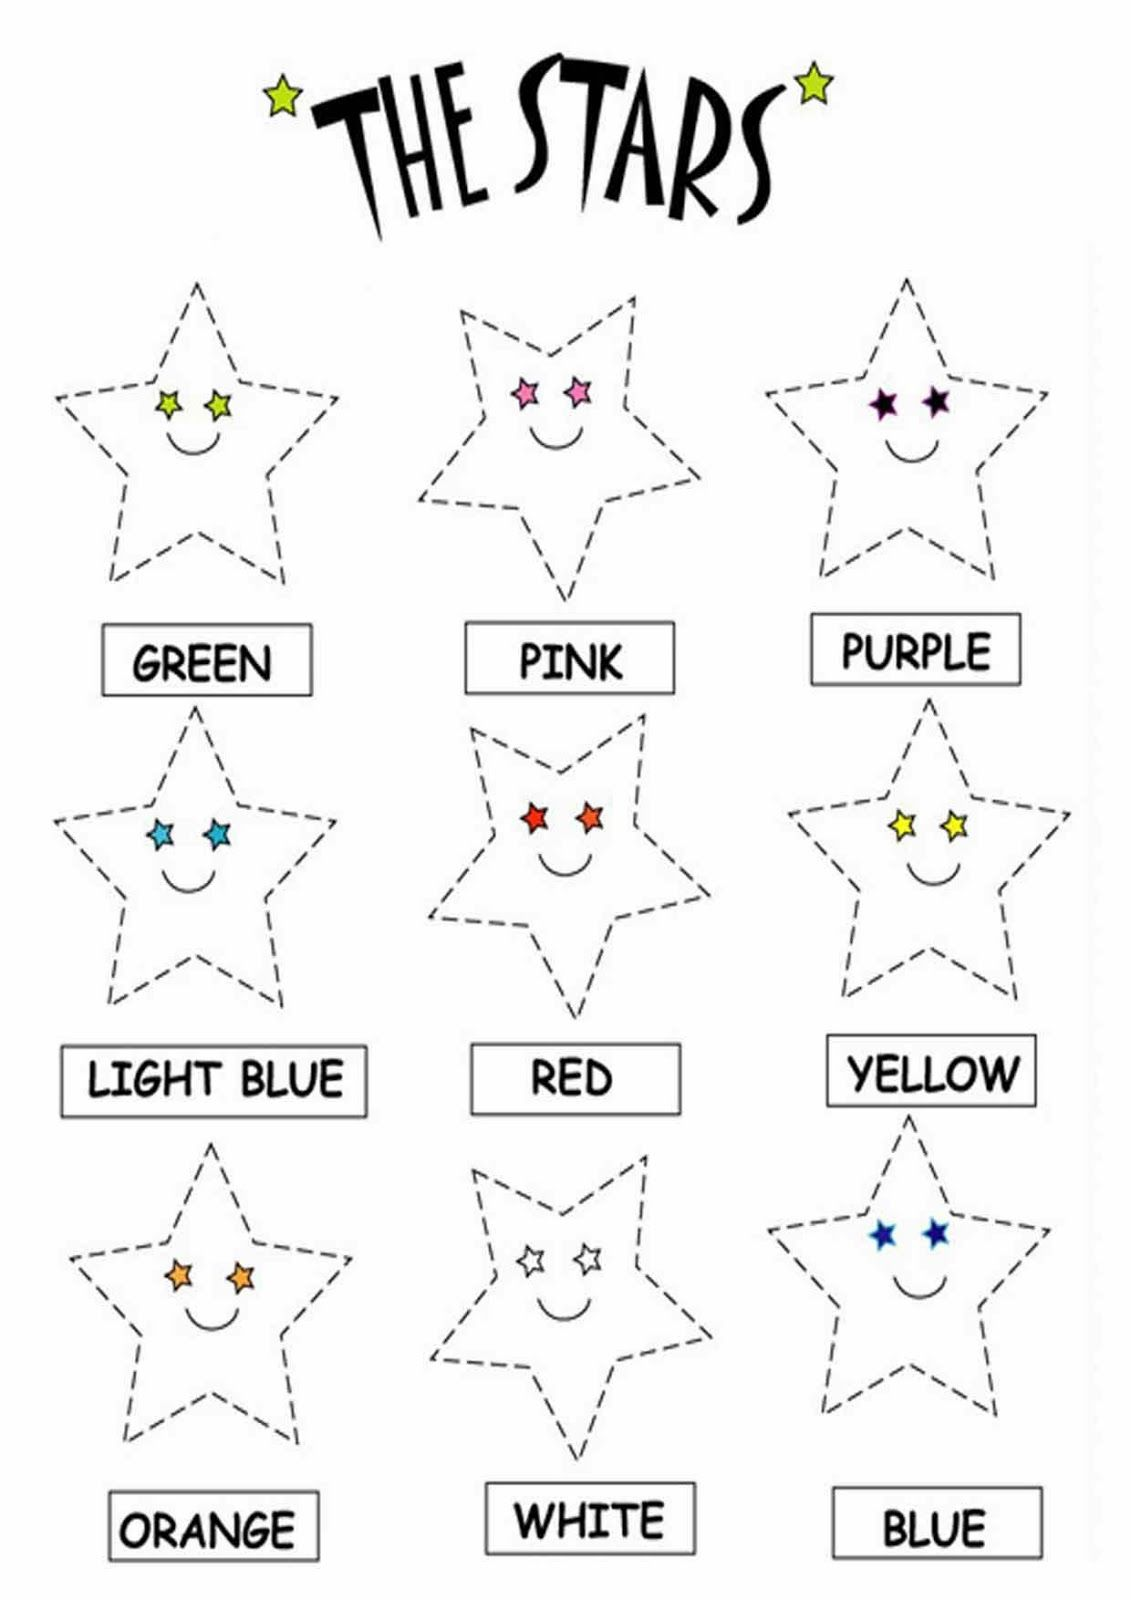 Color The Stars Worksheets Download Free Printable And